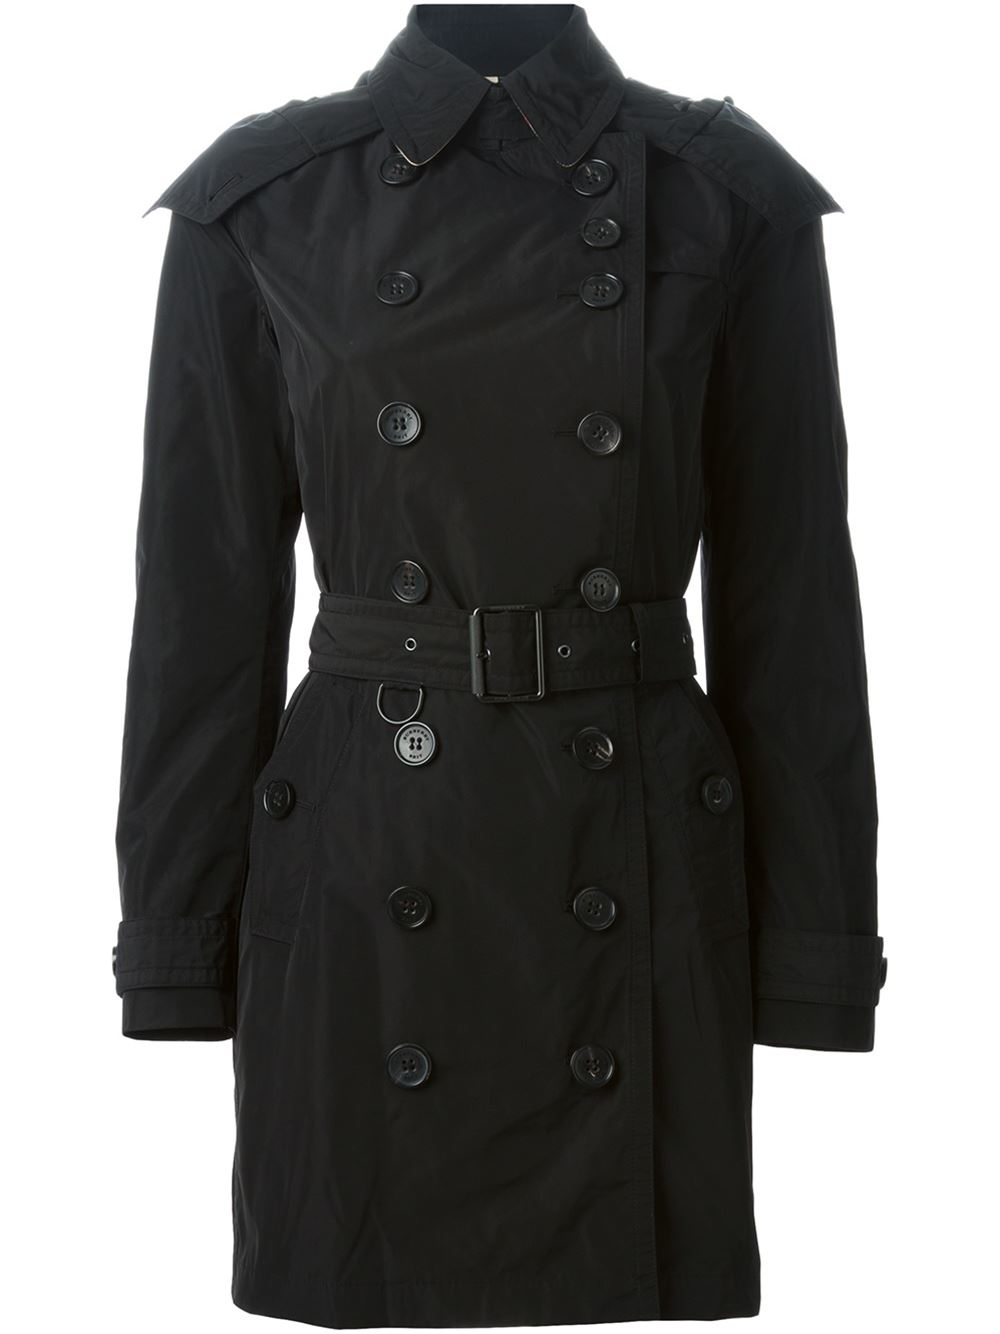 15c1f2d101c Burberry Trench Coat Sale Outlet